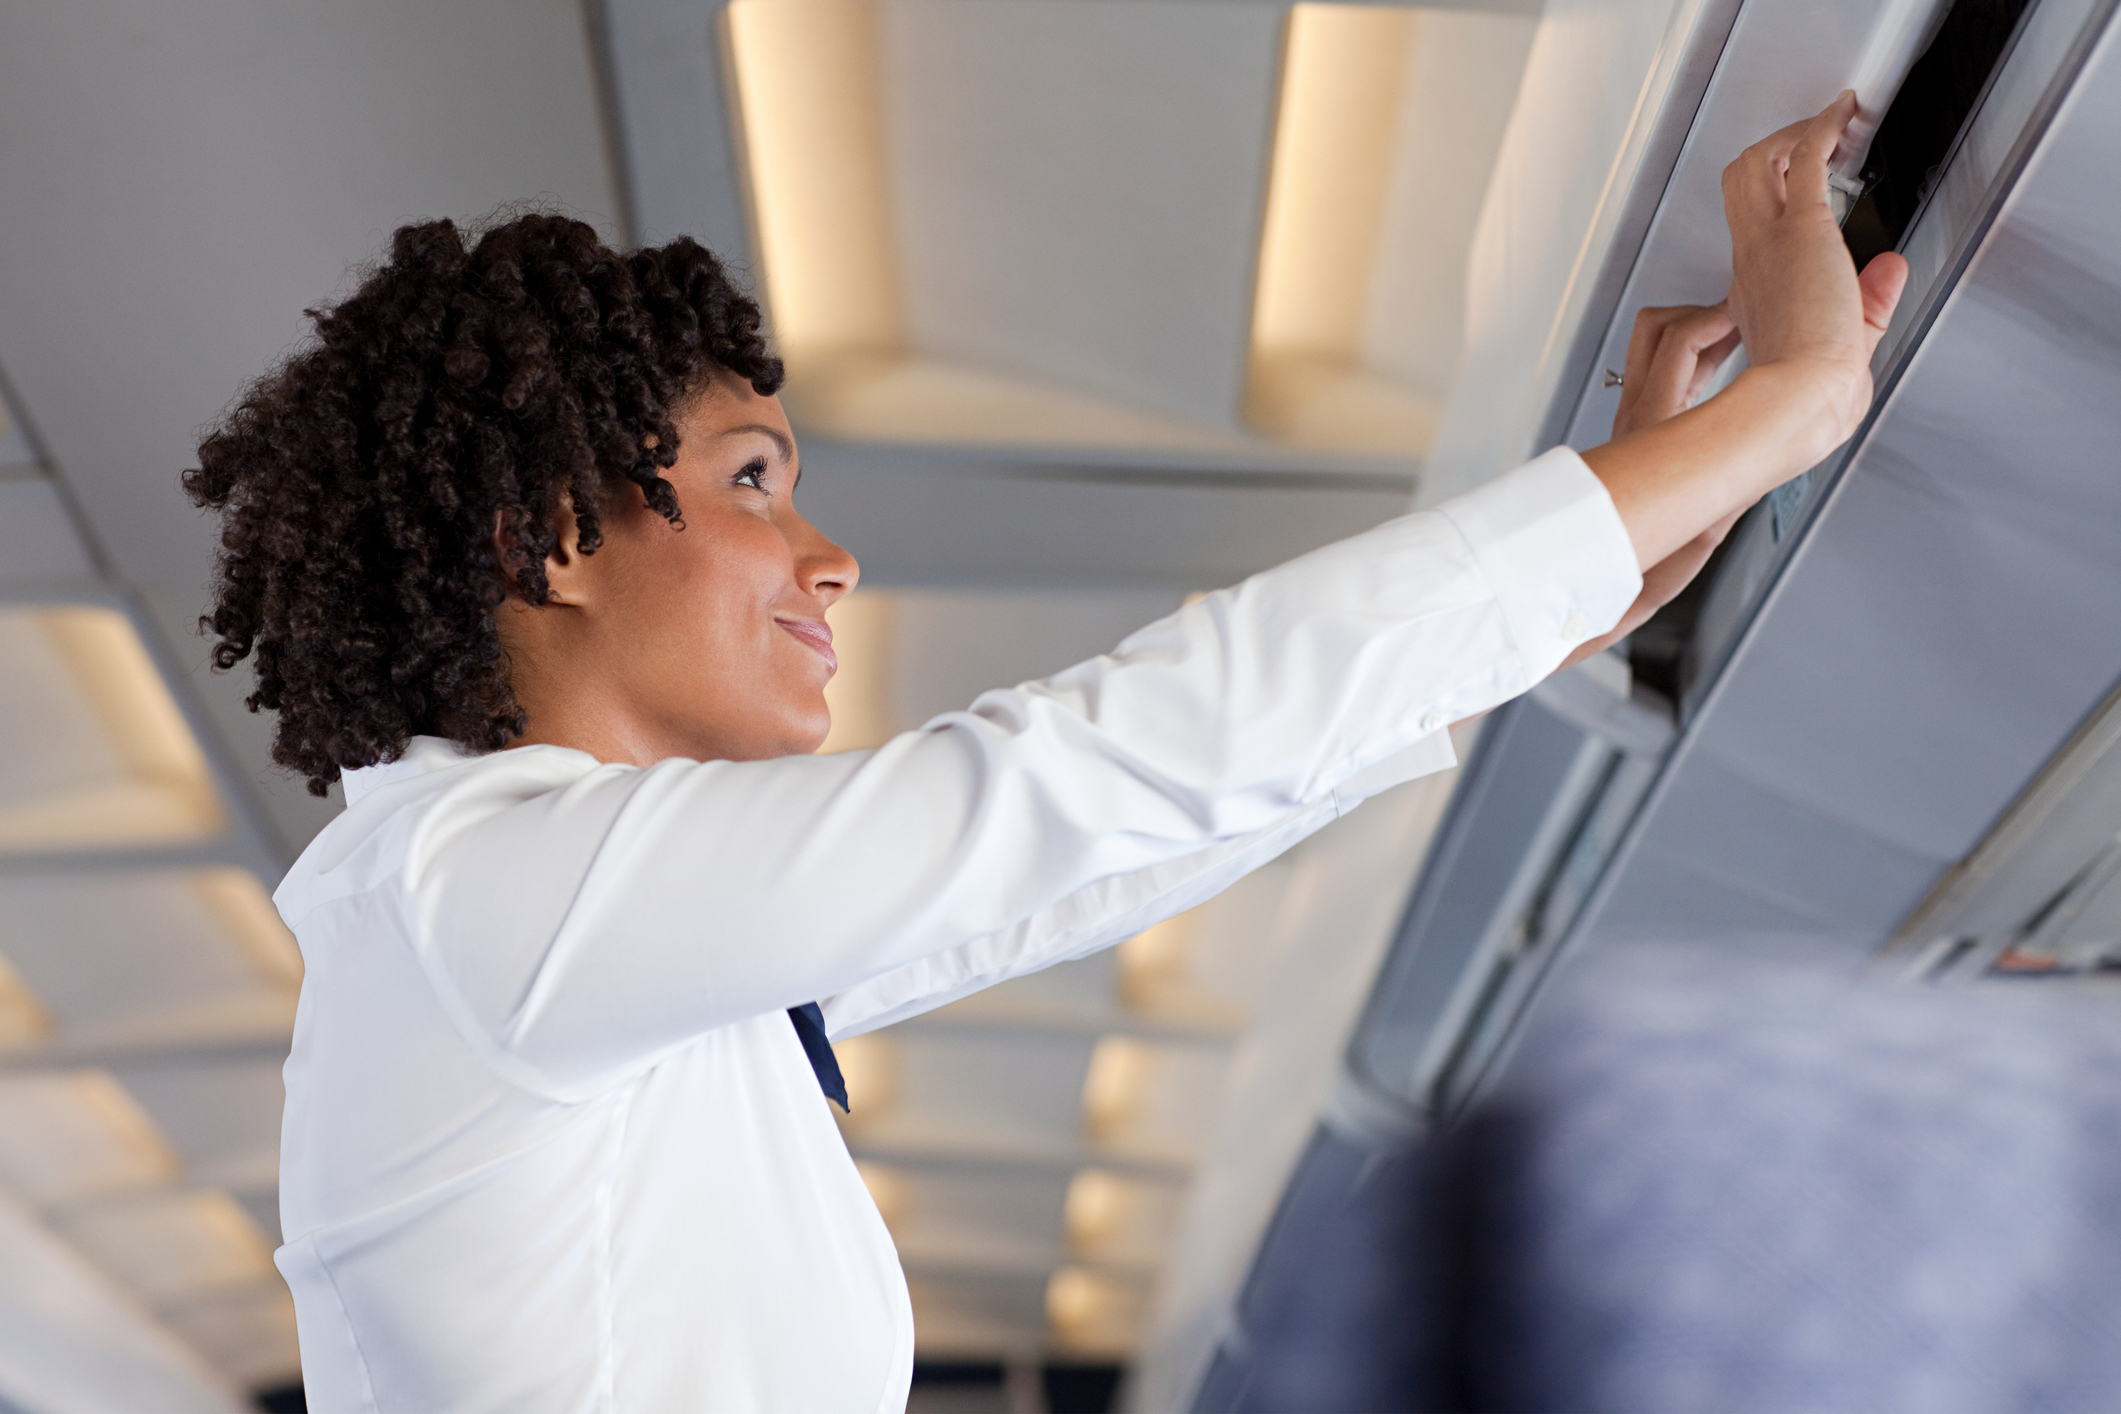 A flight attendant putting a suitcase in the overhead compartment